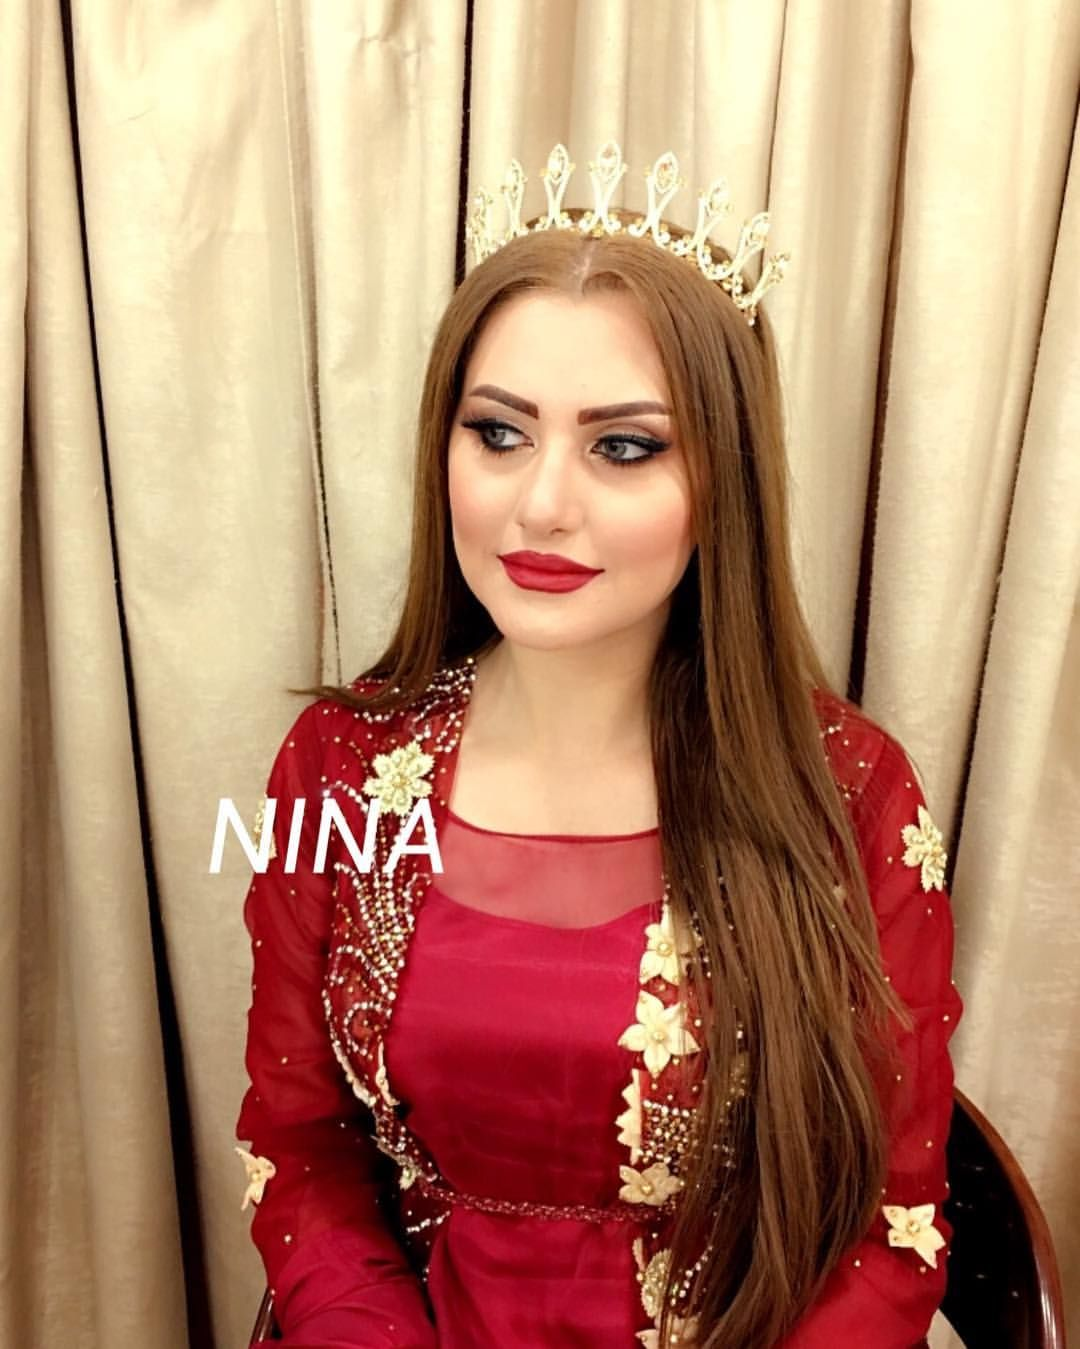 Pin By Ahlamarabian On Awesome Models Dresses Afghan Dresses Makeup